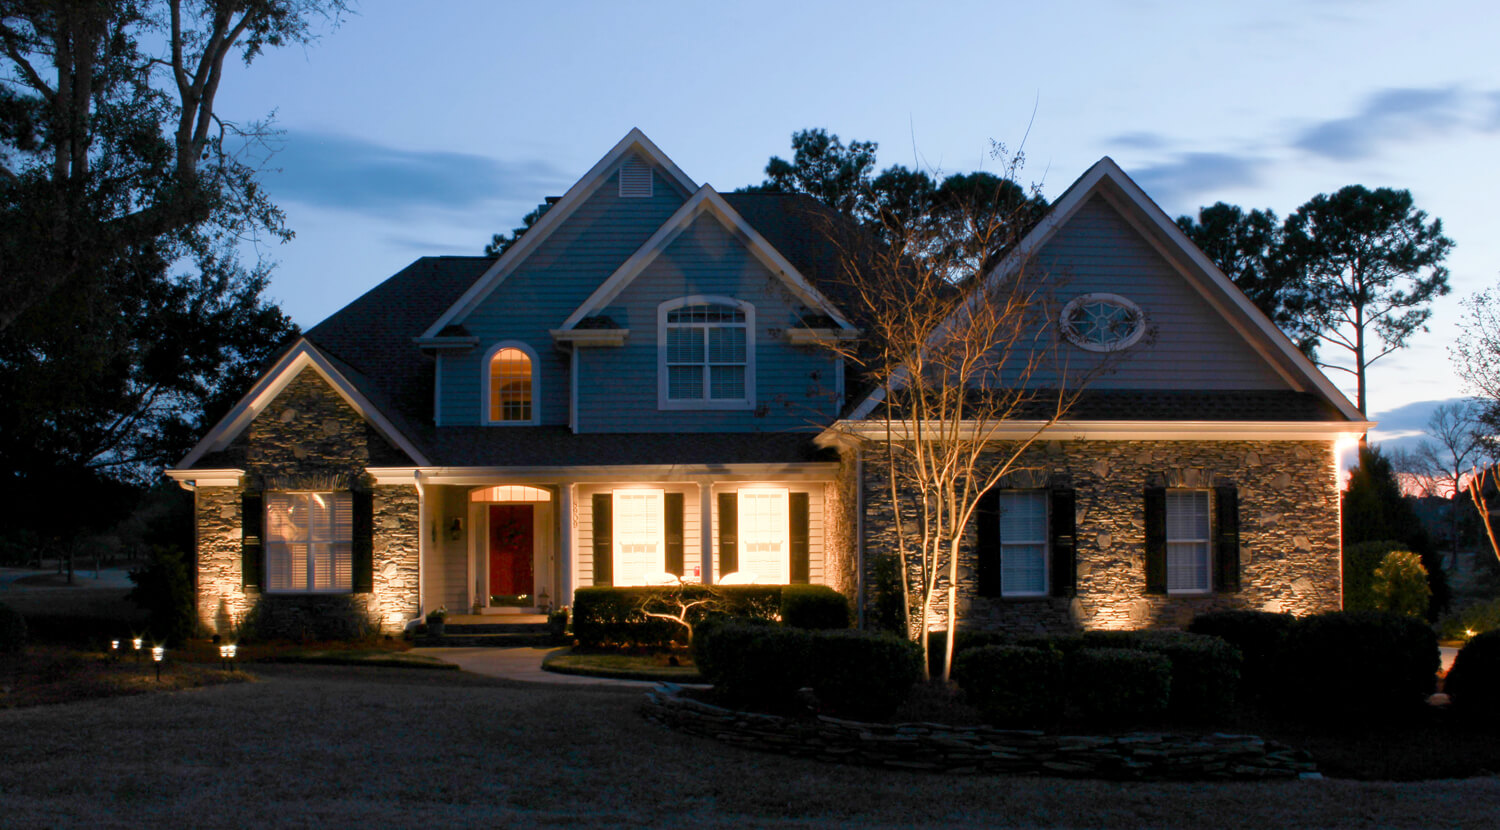 Beautiful home illuminated by Outdoor Lighting